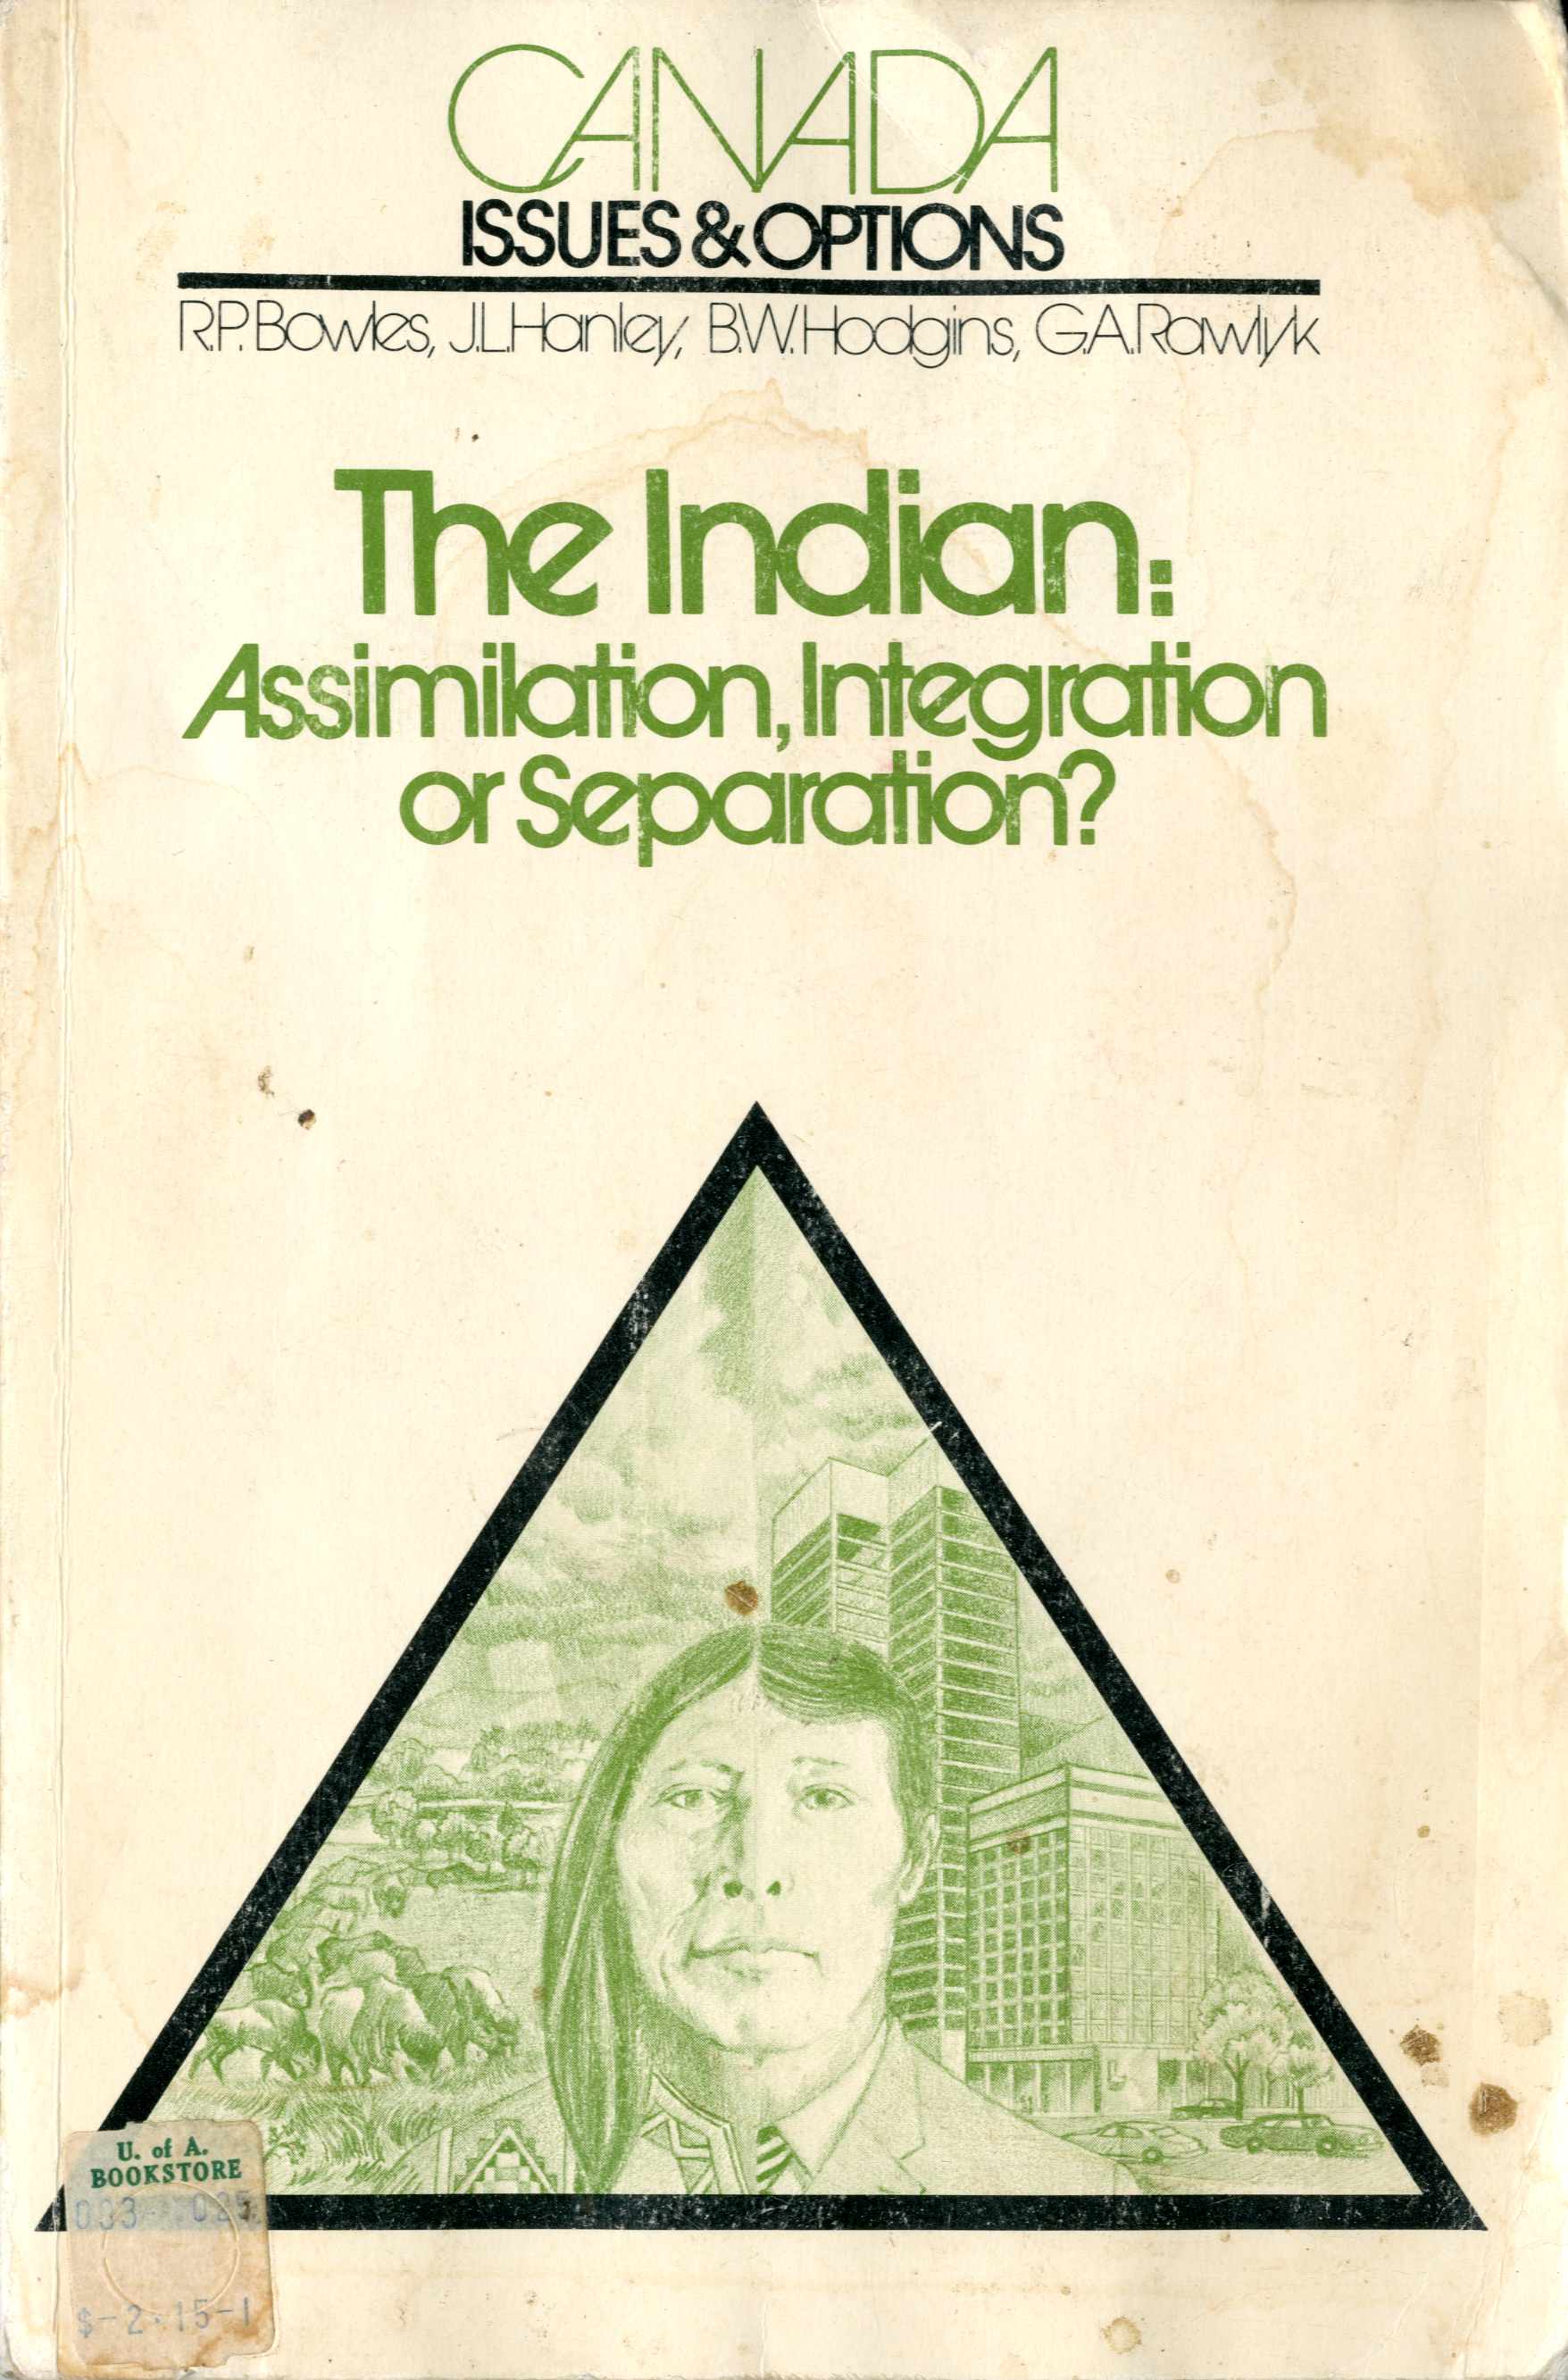 The Indian: Assimilation, Integration or Separation? Image